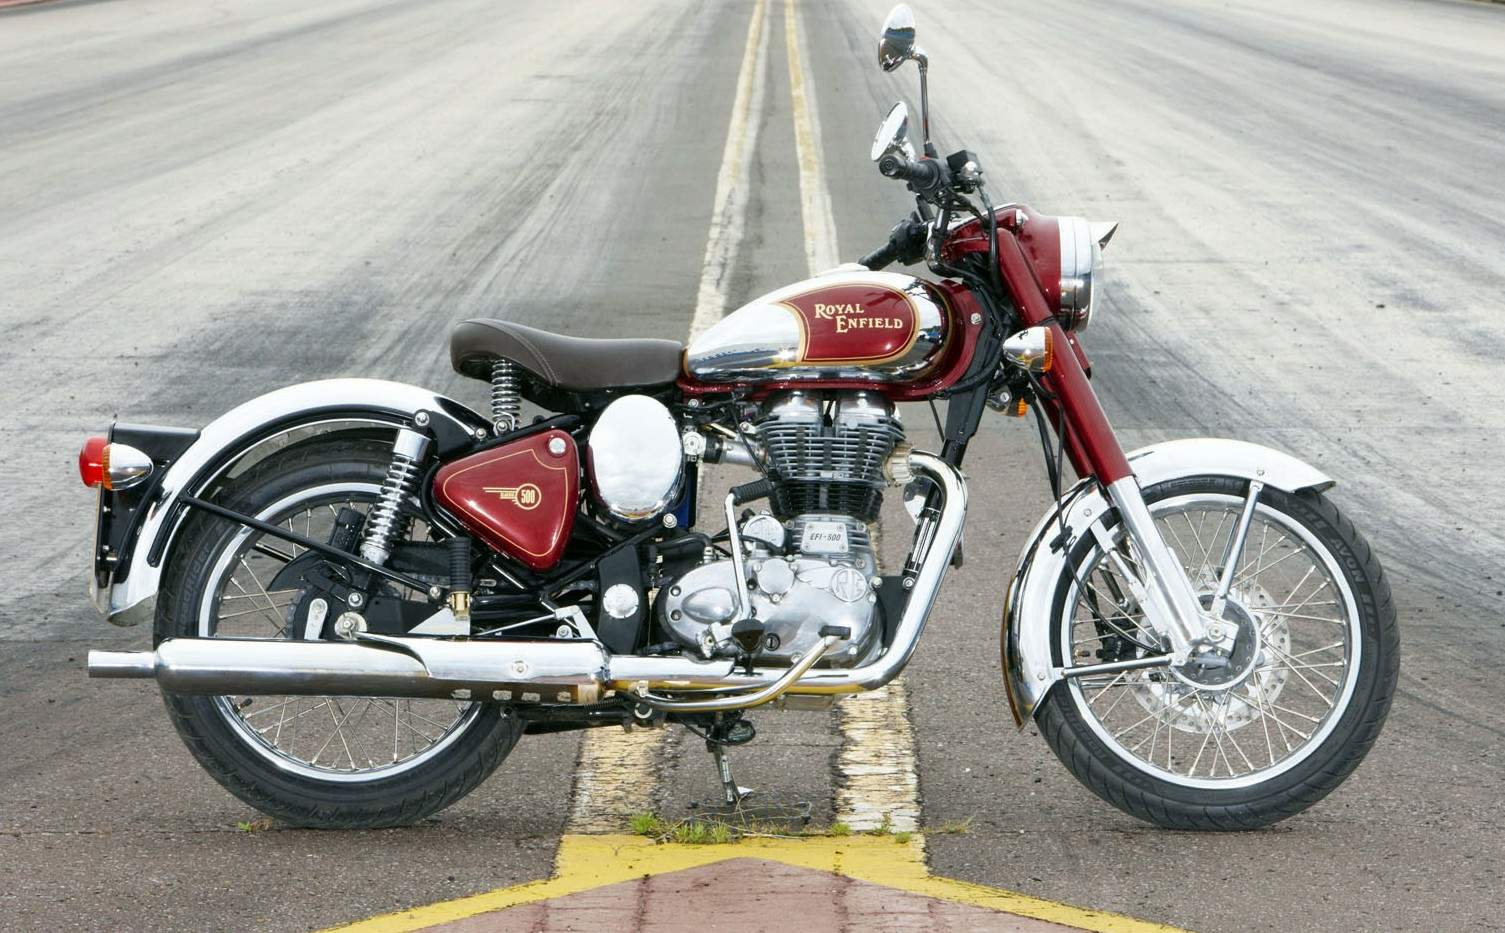 Royal Enfield Bullet 350 Classic 2007 images #123979